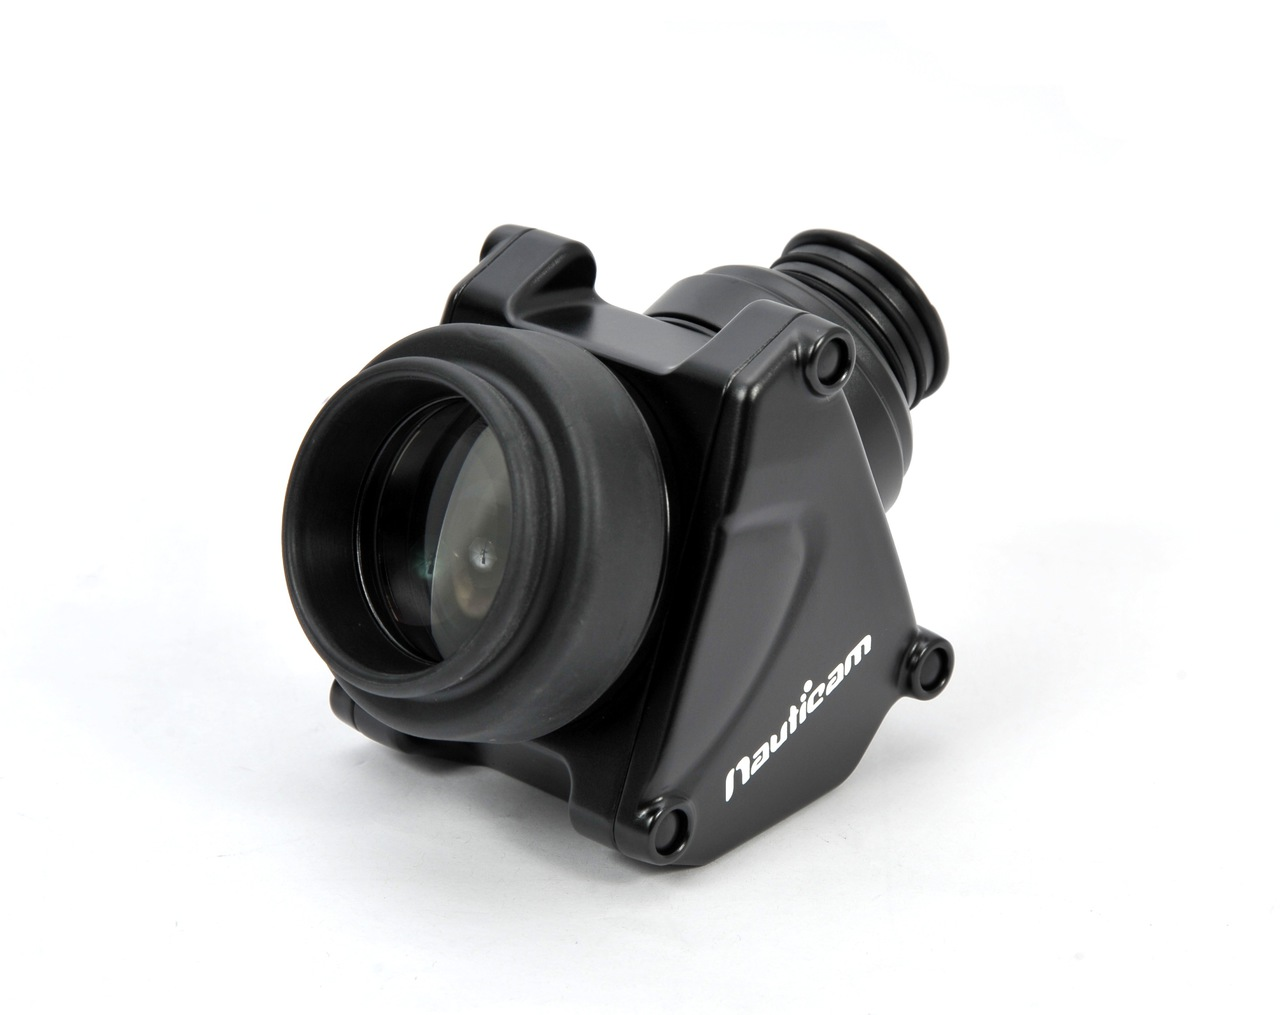 32205 Nauticam 45 Viewfinder for Mirrorless Systems